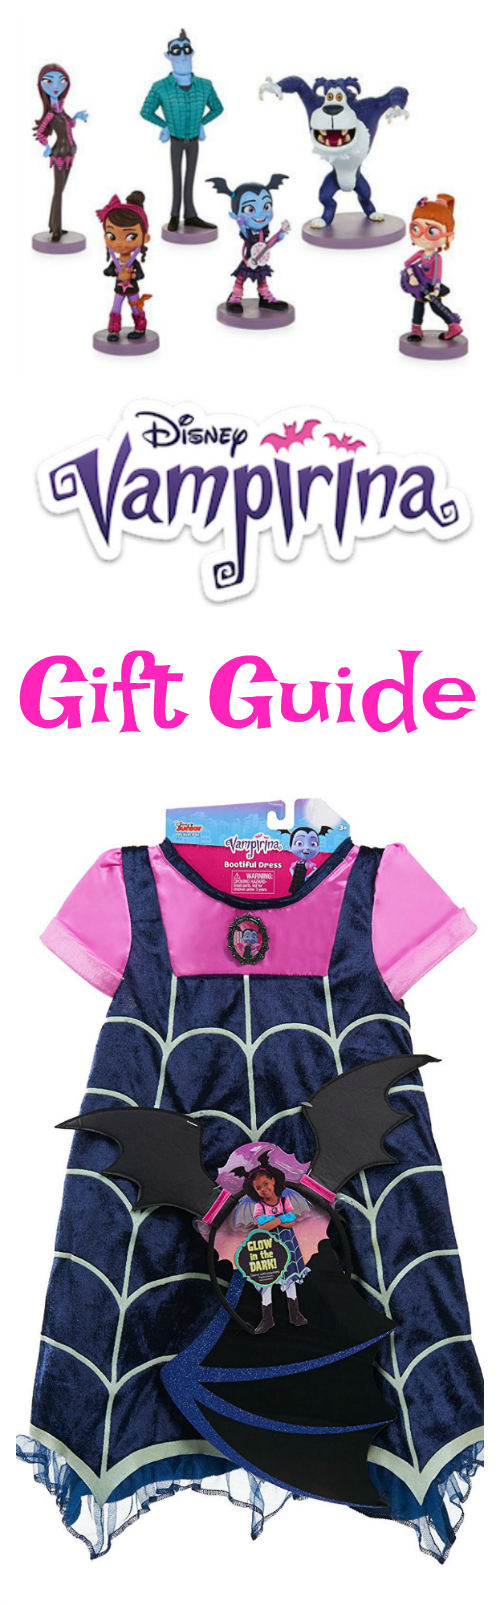 Find fun ideas for birthday or holiday presents with this Disney Vampirina Gift Guide!